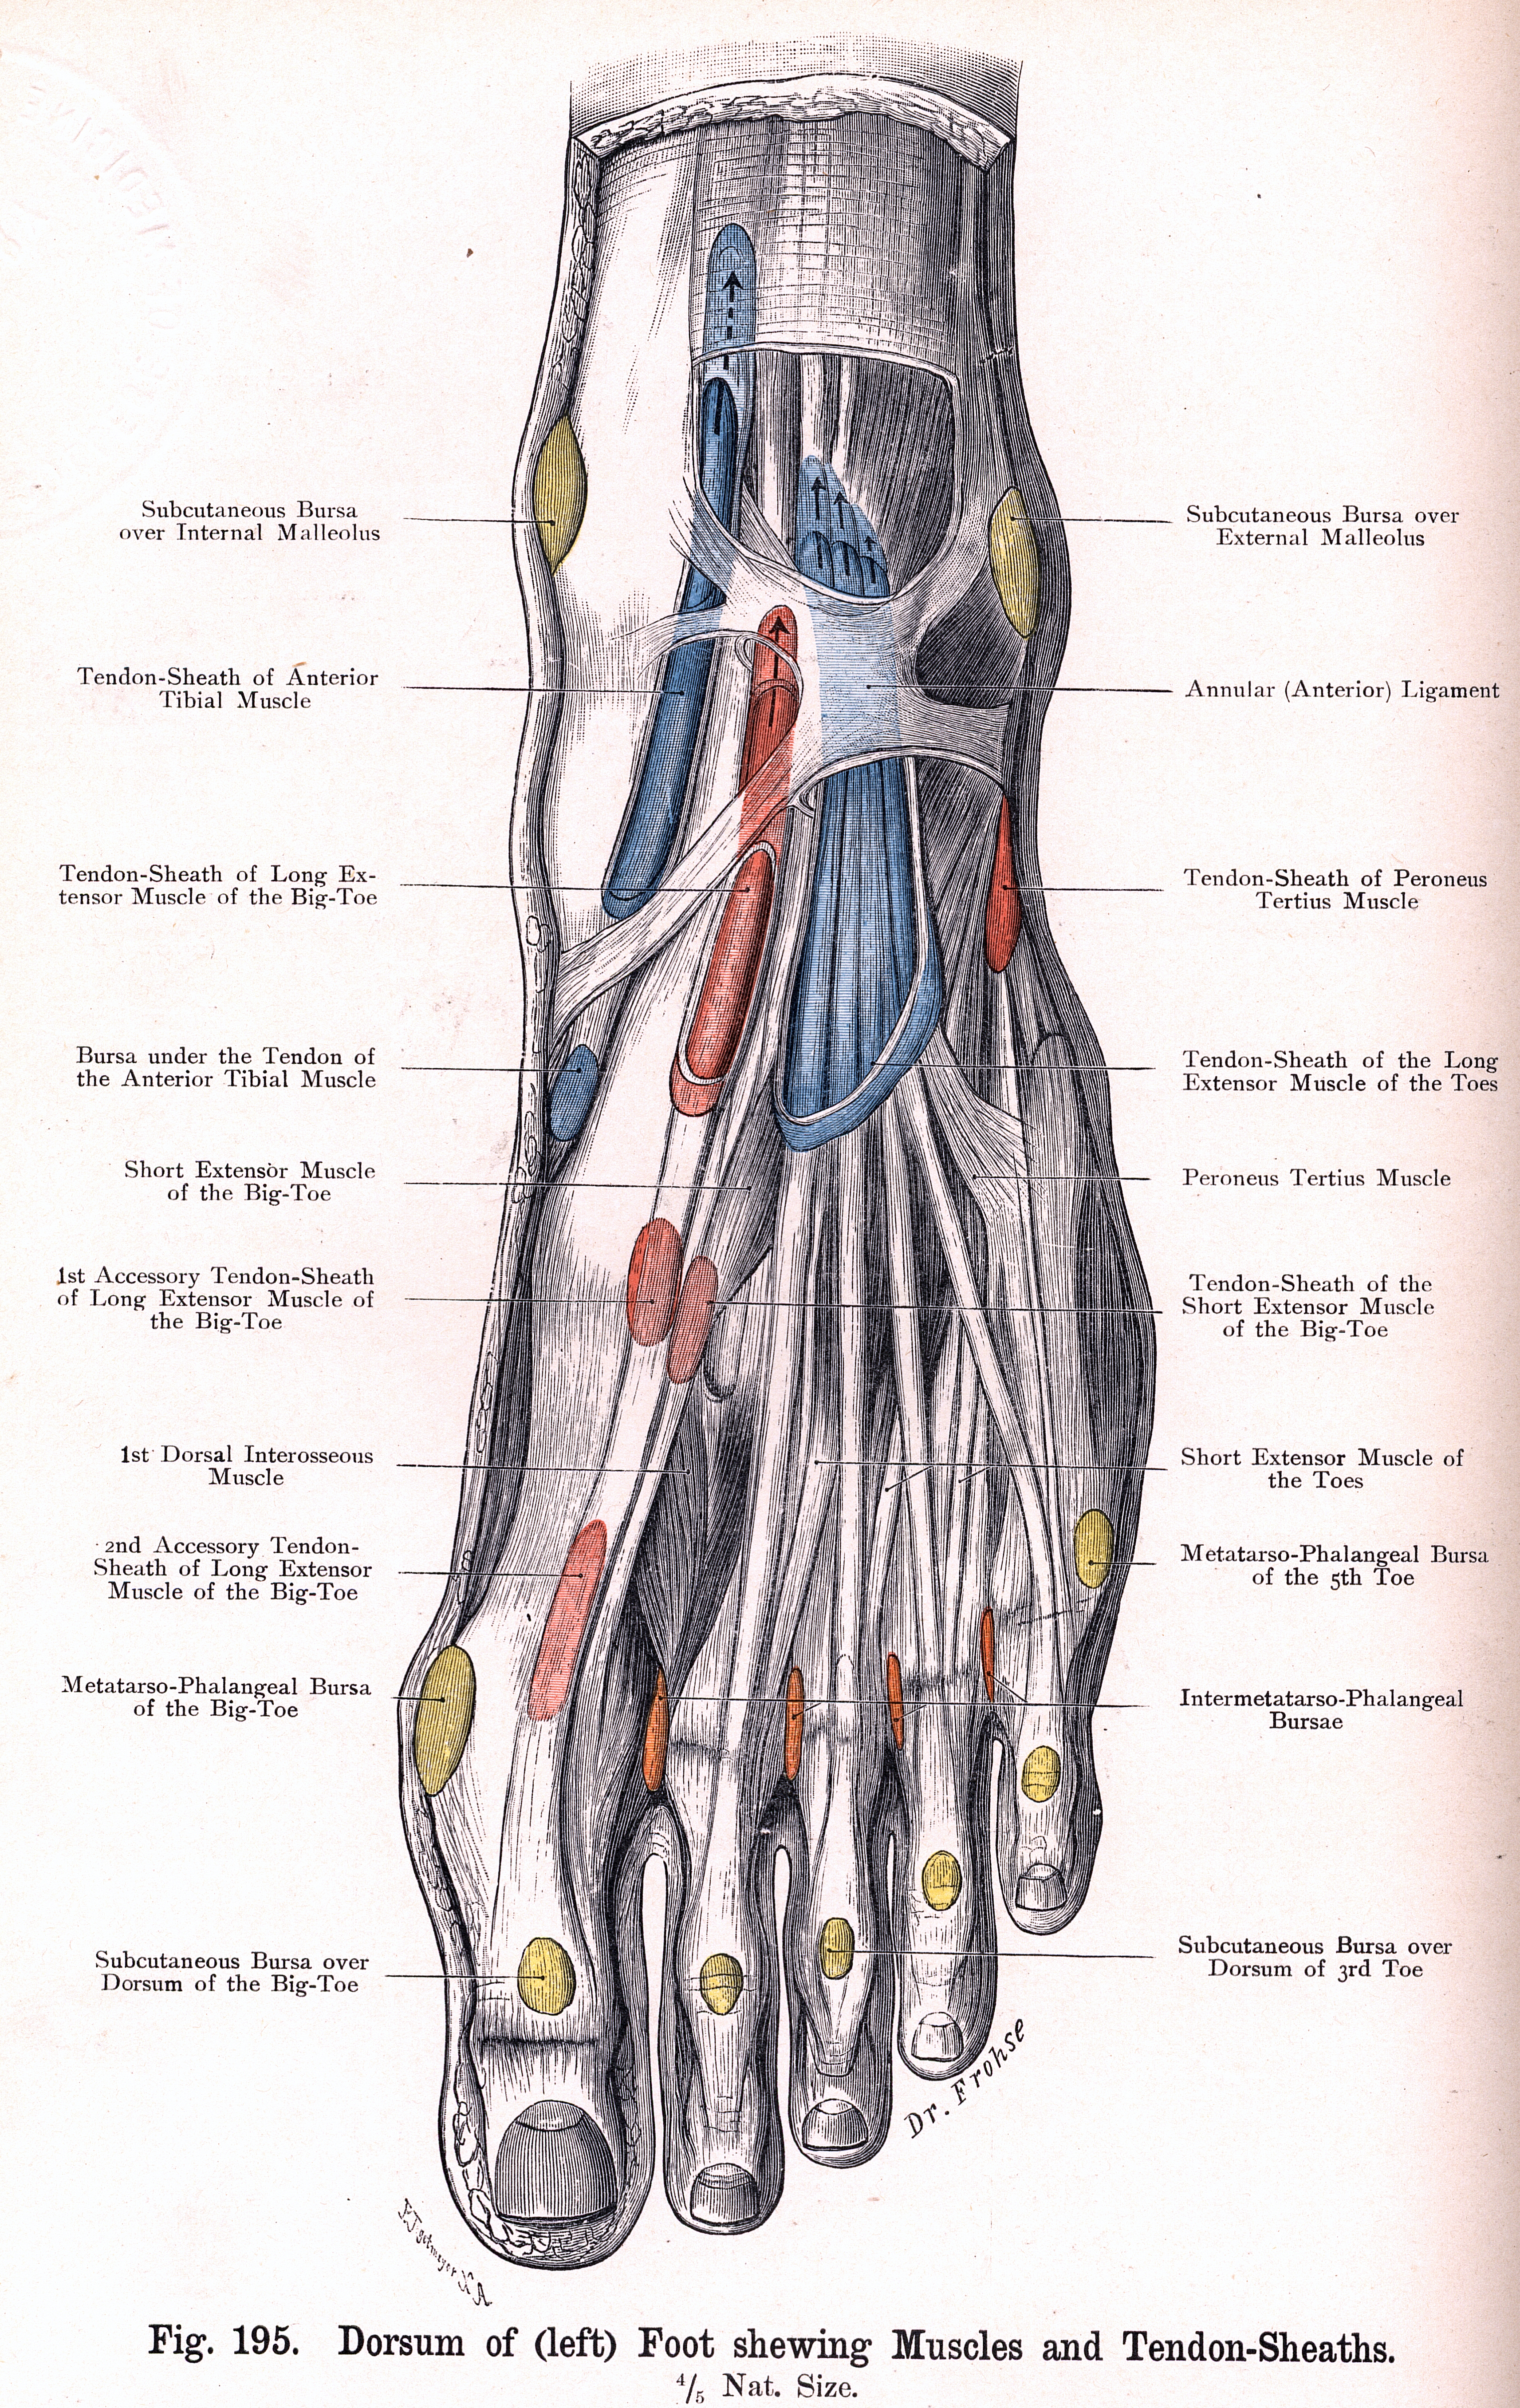 195. dorsum of left foot with muscles and tendon-sheaths, Cephalic Vein